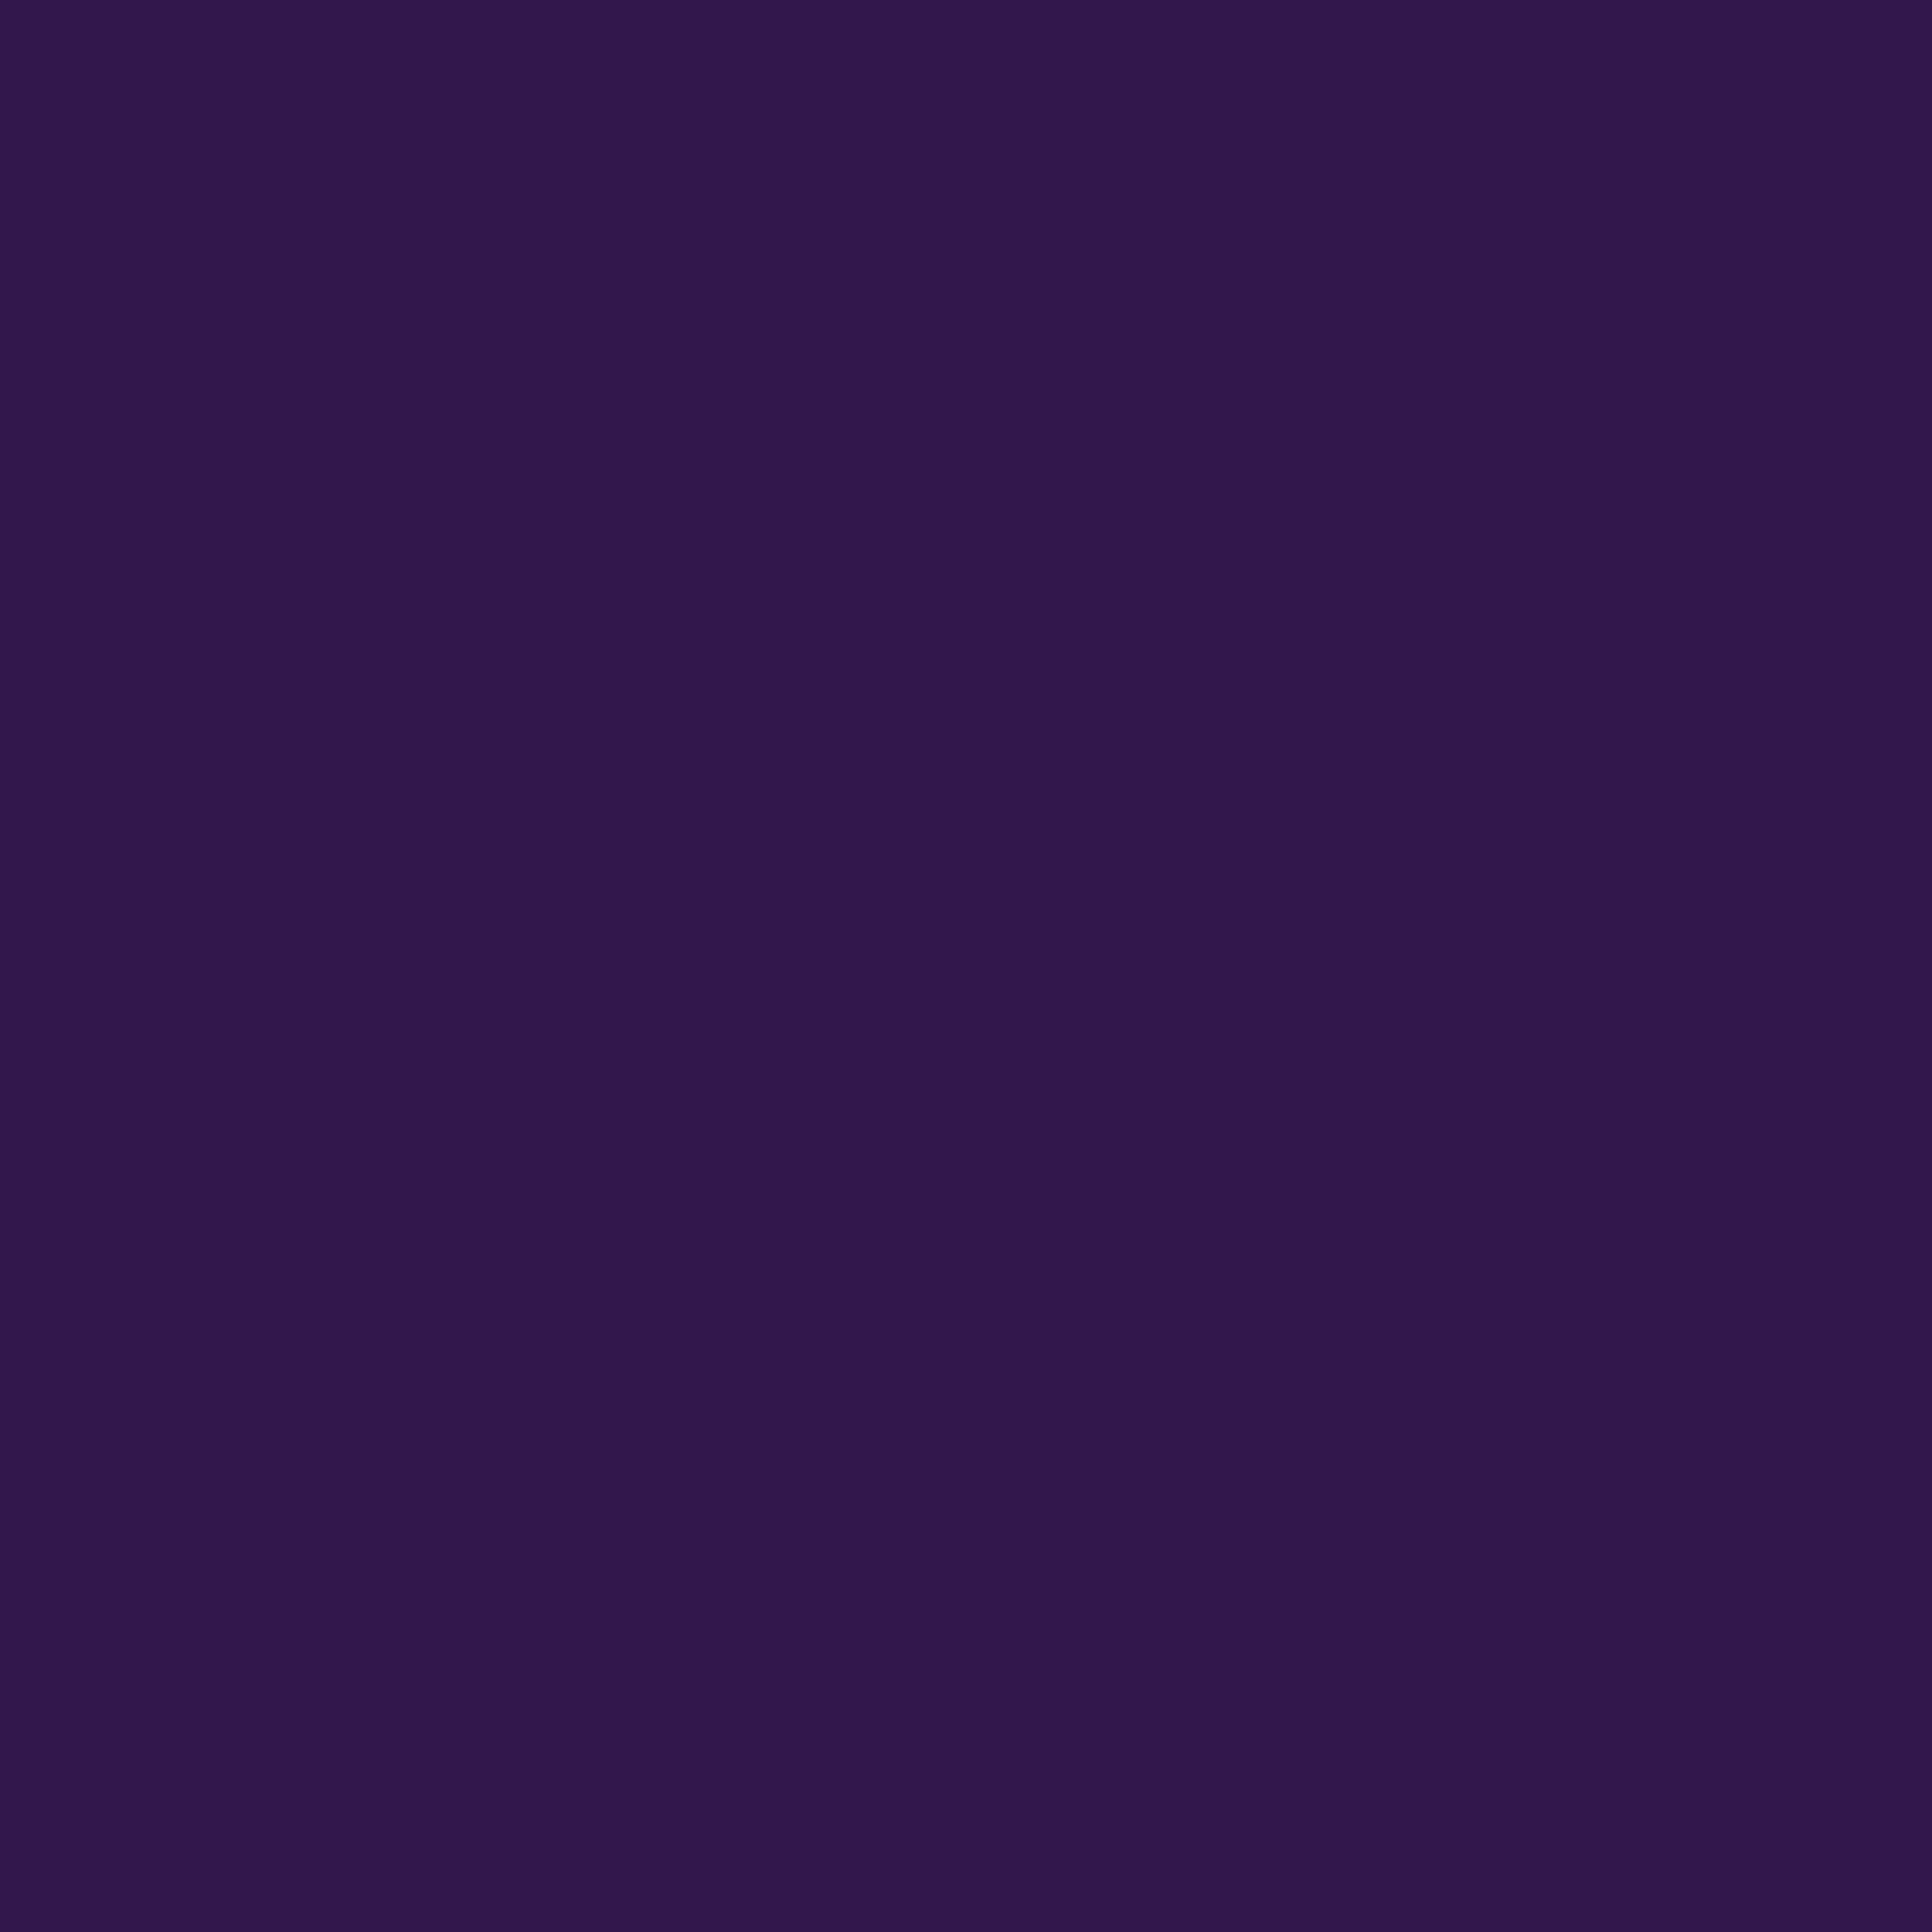 2732x2732 Russian Violet Solid Color Background